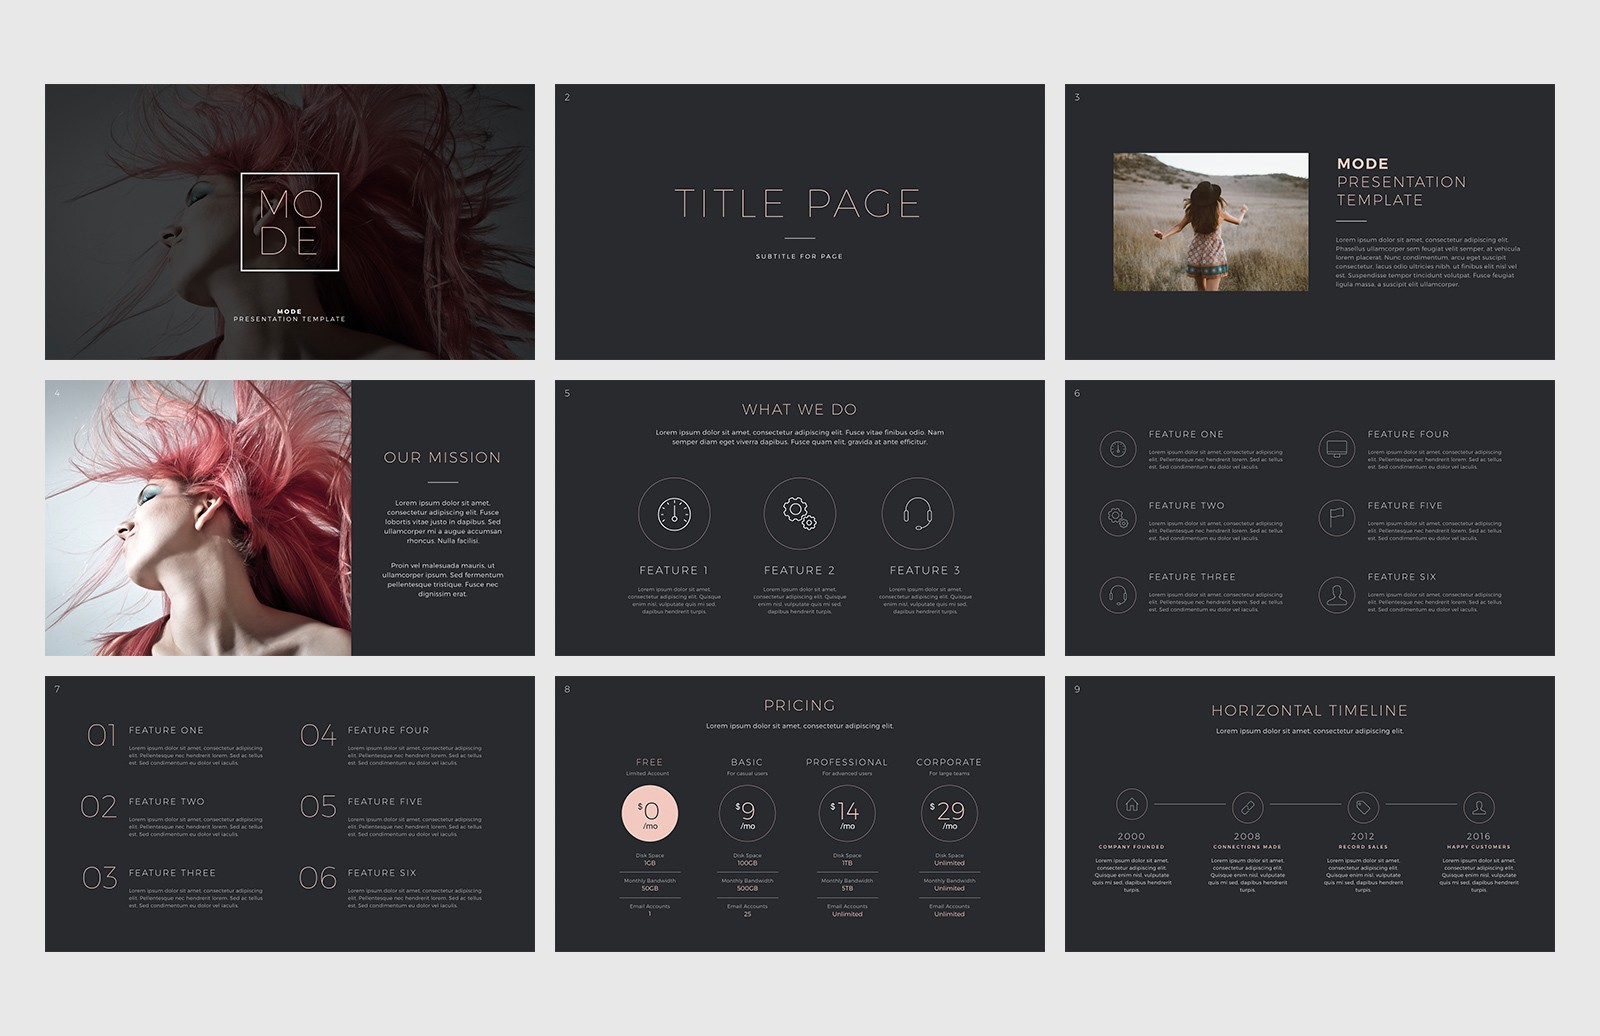 Mode Keynote Presentation Template